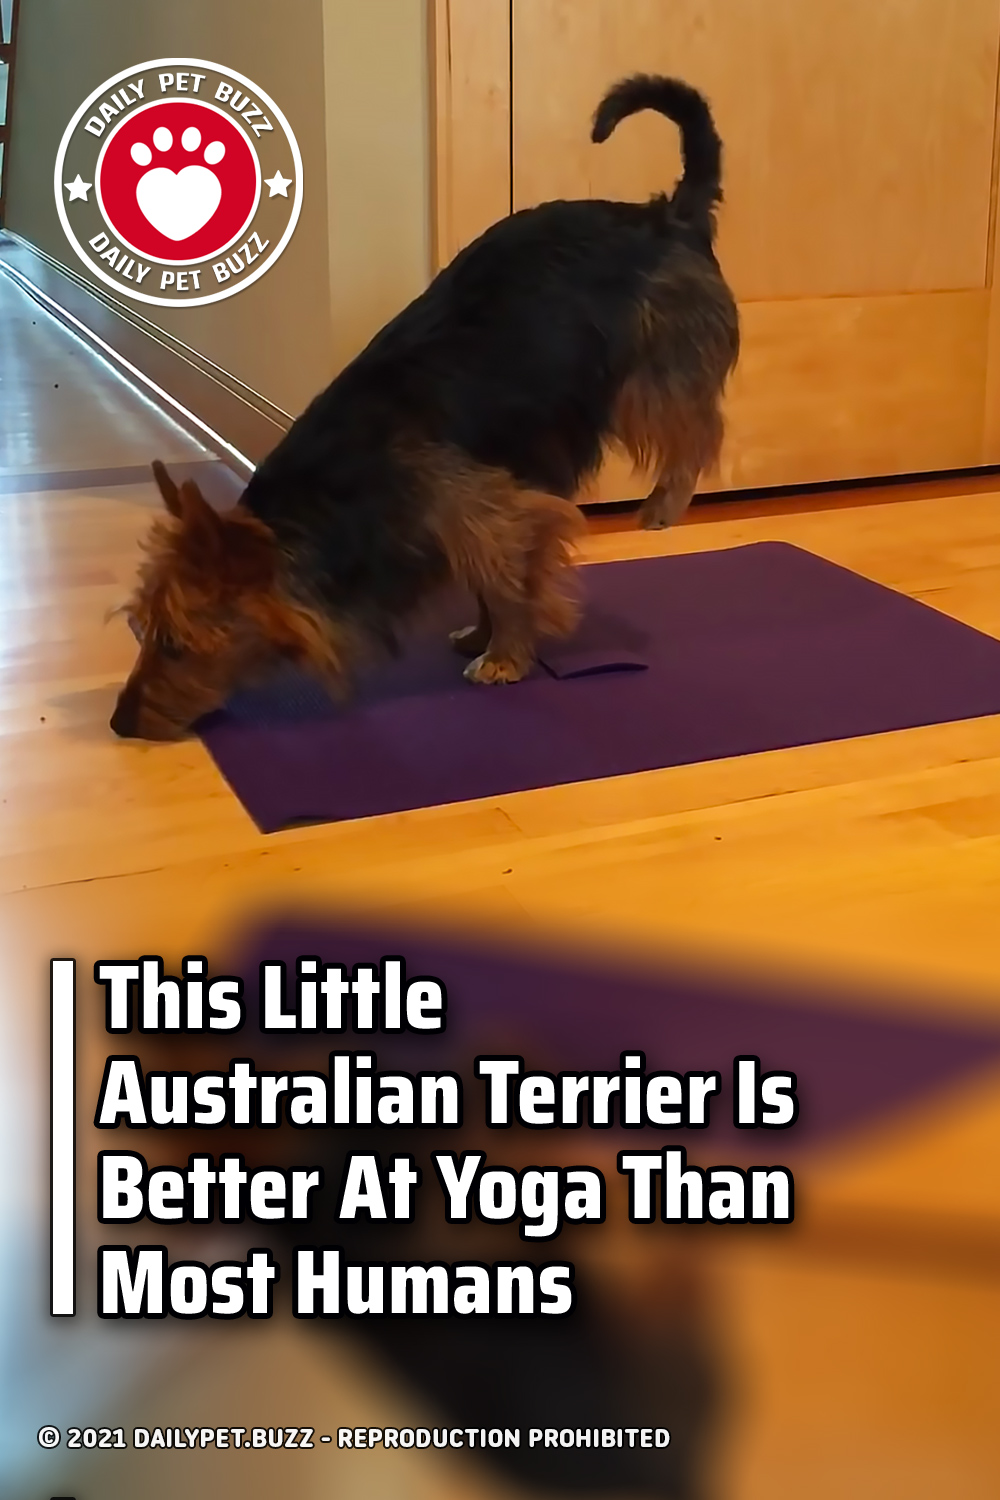 This Little Australian Terrier Is Better At Yoga Than Most Humans